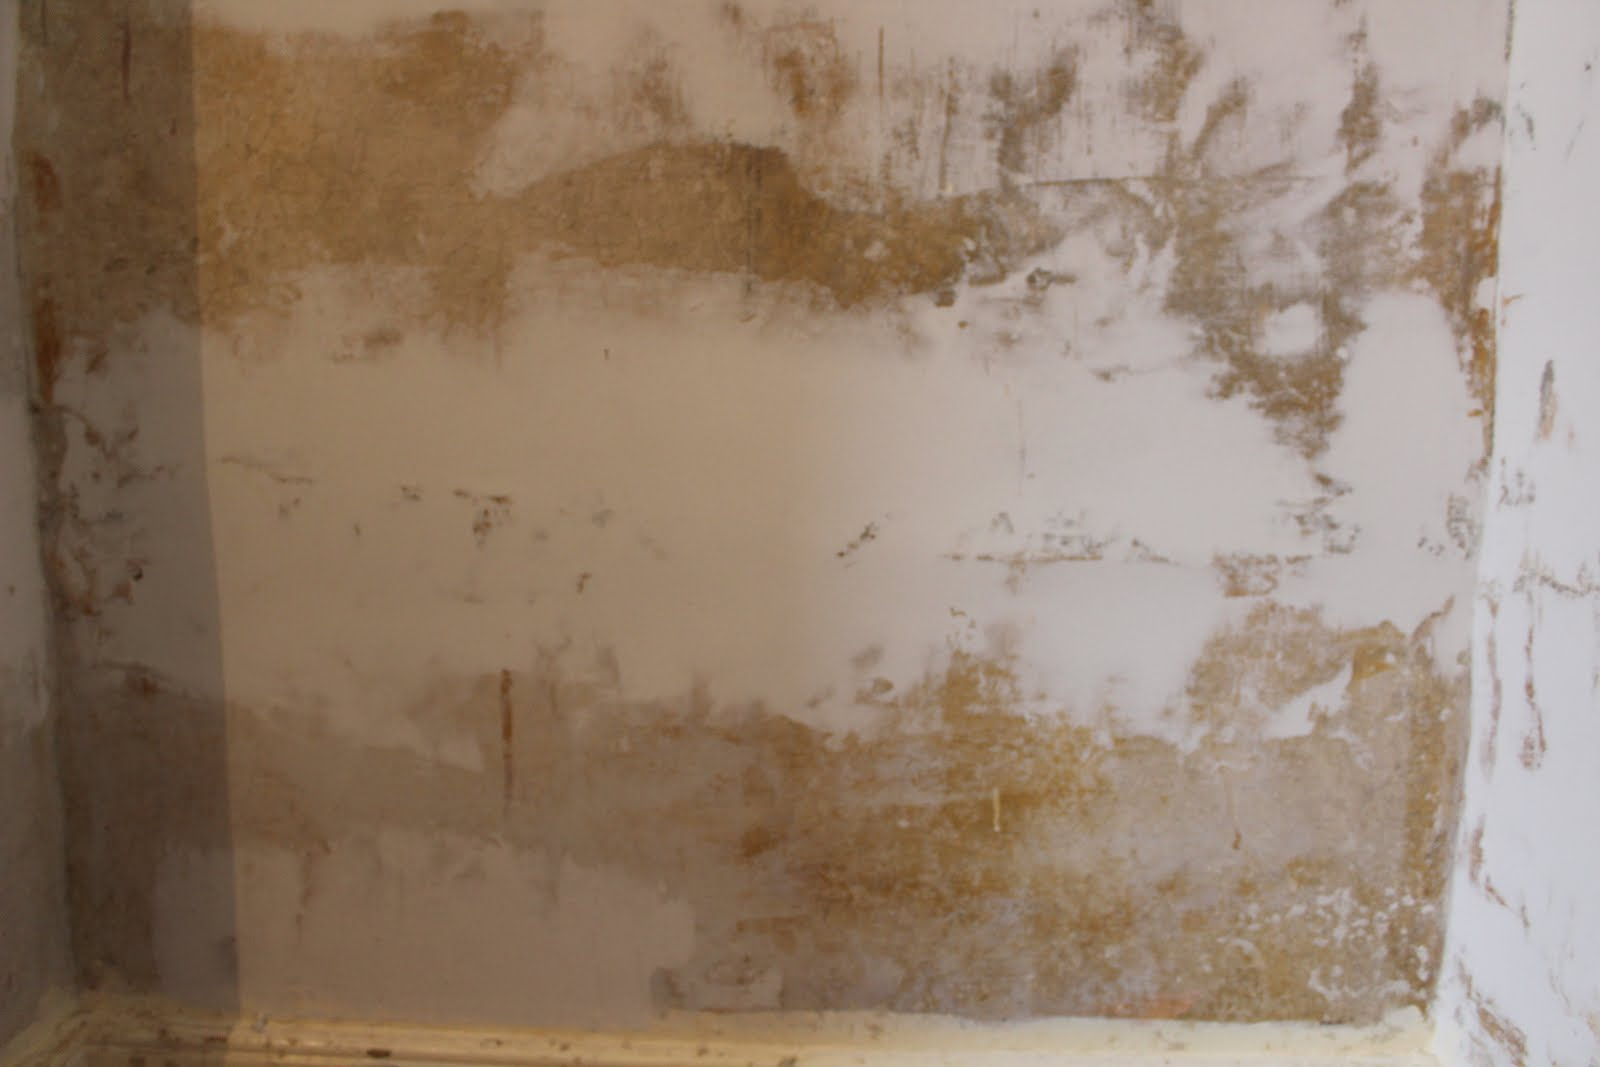 How to repair bulges in plaster